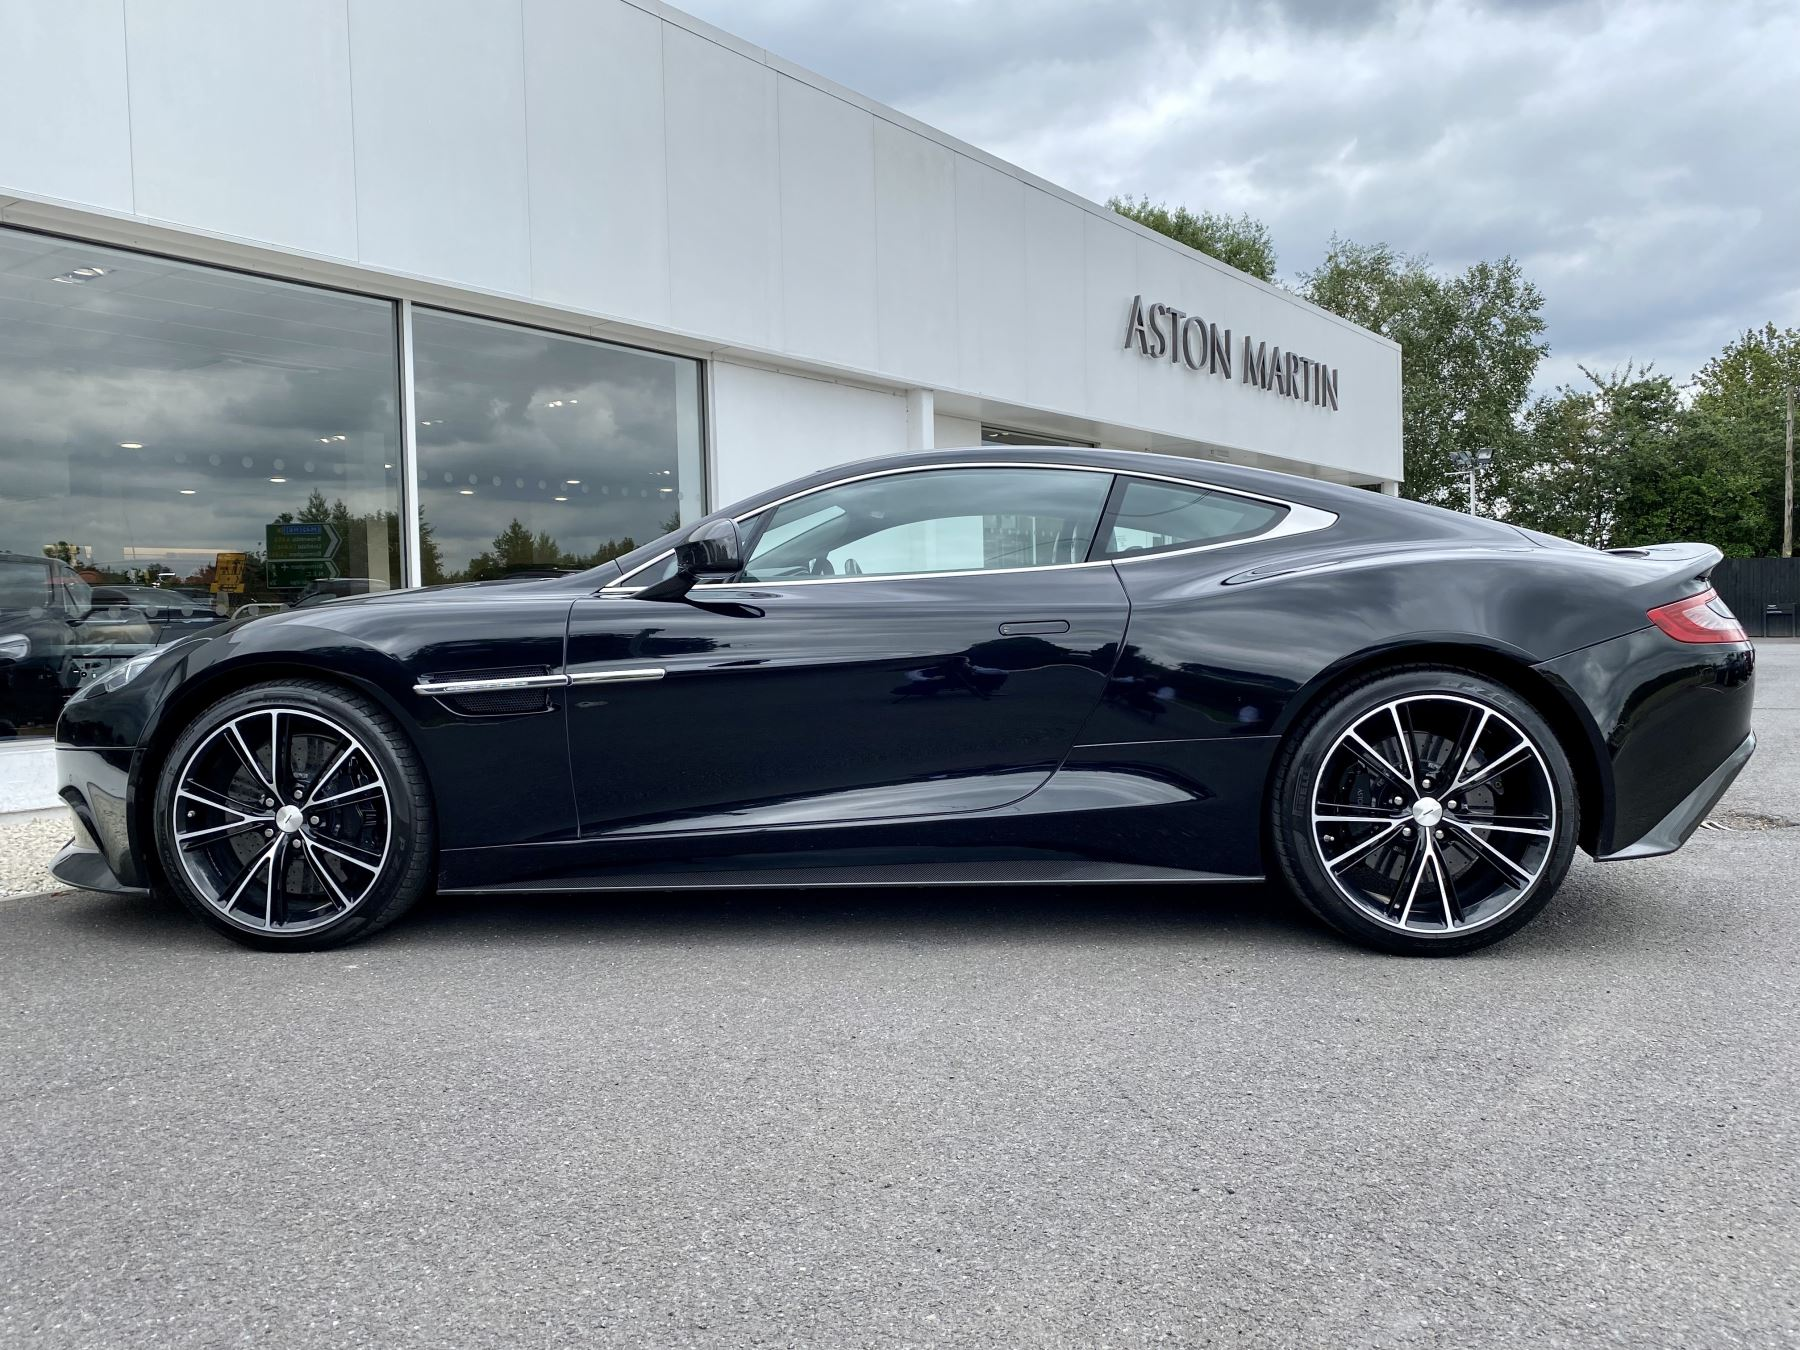 Aston Martin Vanquish V12 [568] 2+2 2dr Touchtronic 3 8 Speed, 2 Owners From New, Onyx Black, Bang And Olufsen. image 4